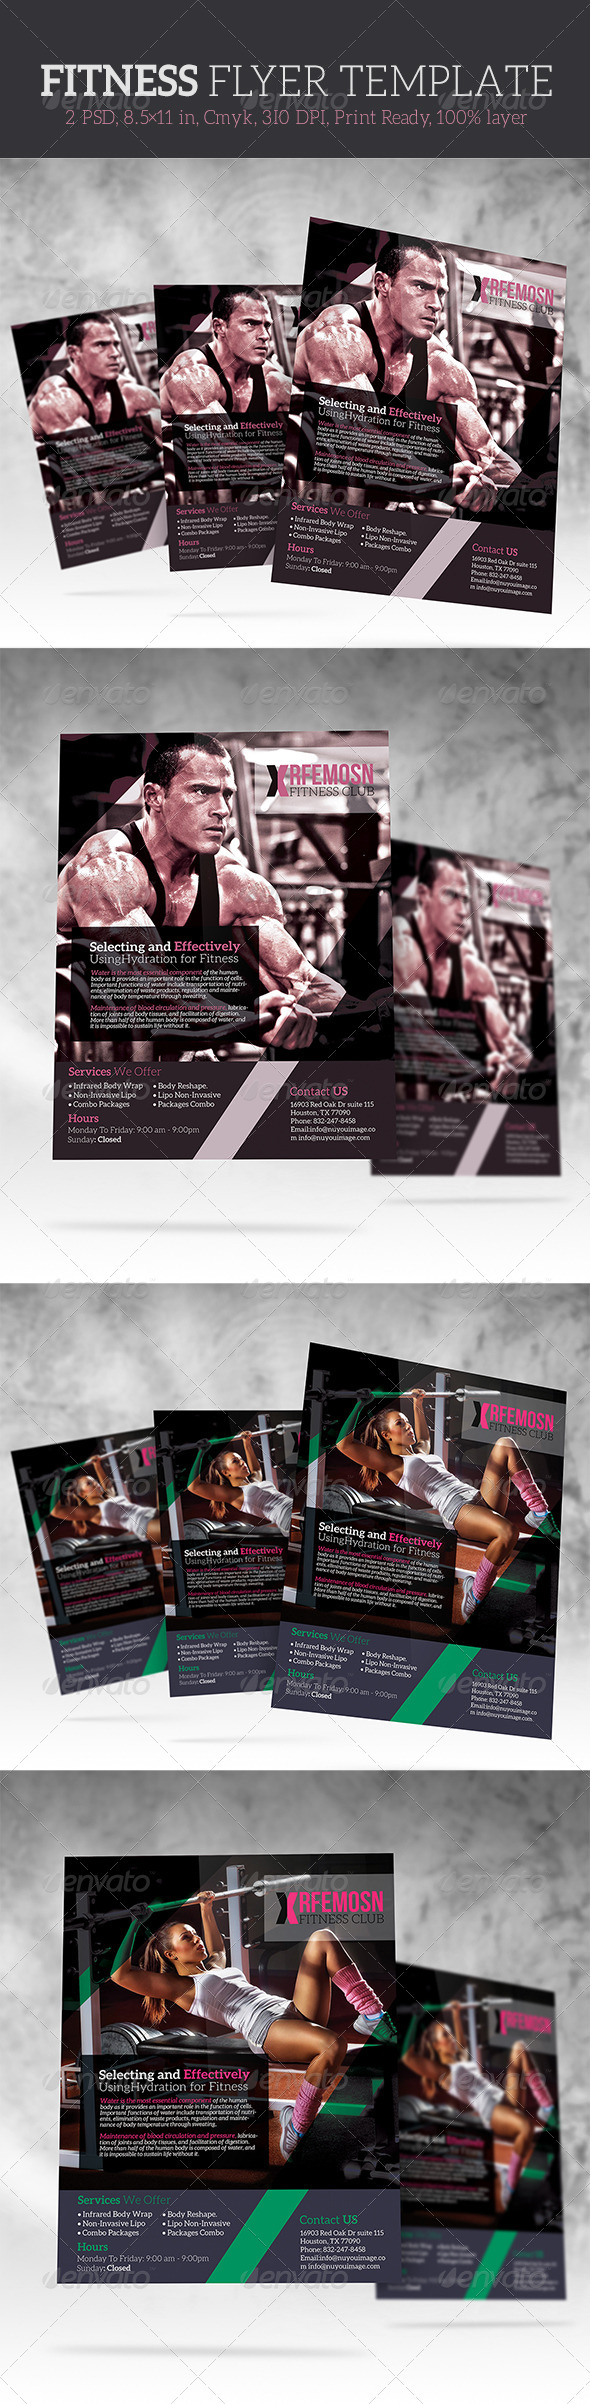 GraphicRiver Fitness Flyer Templates 6851822